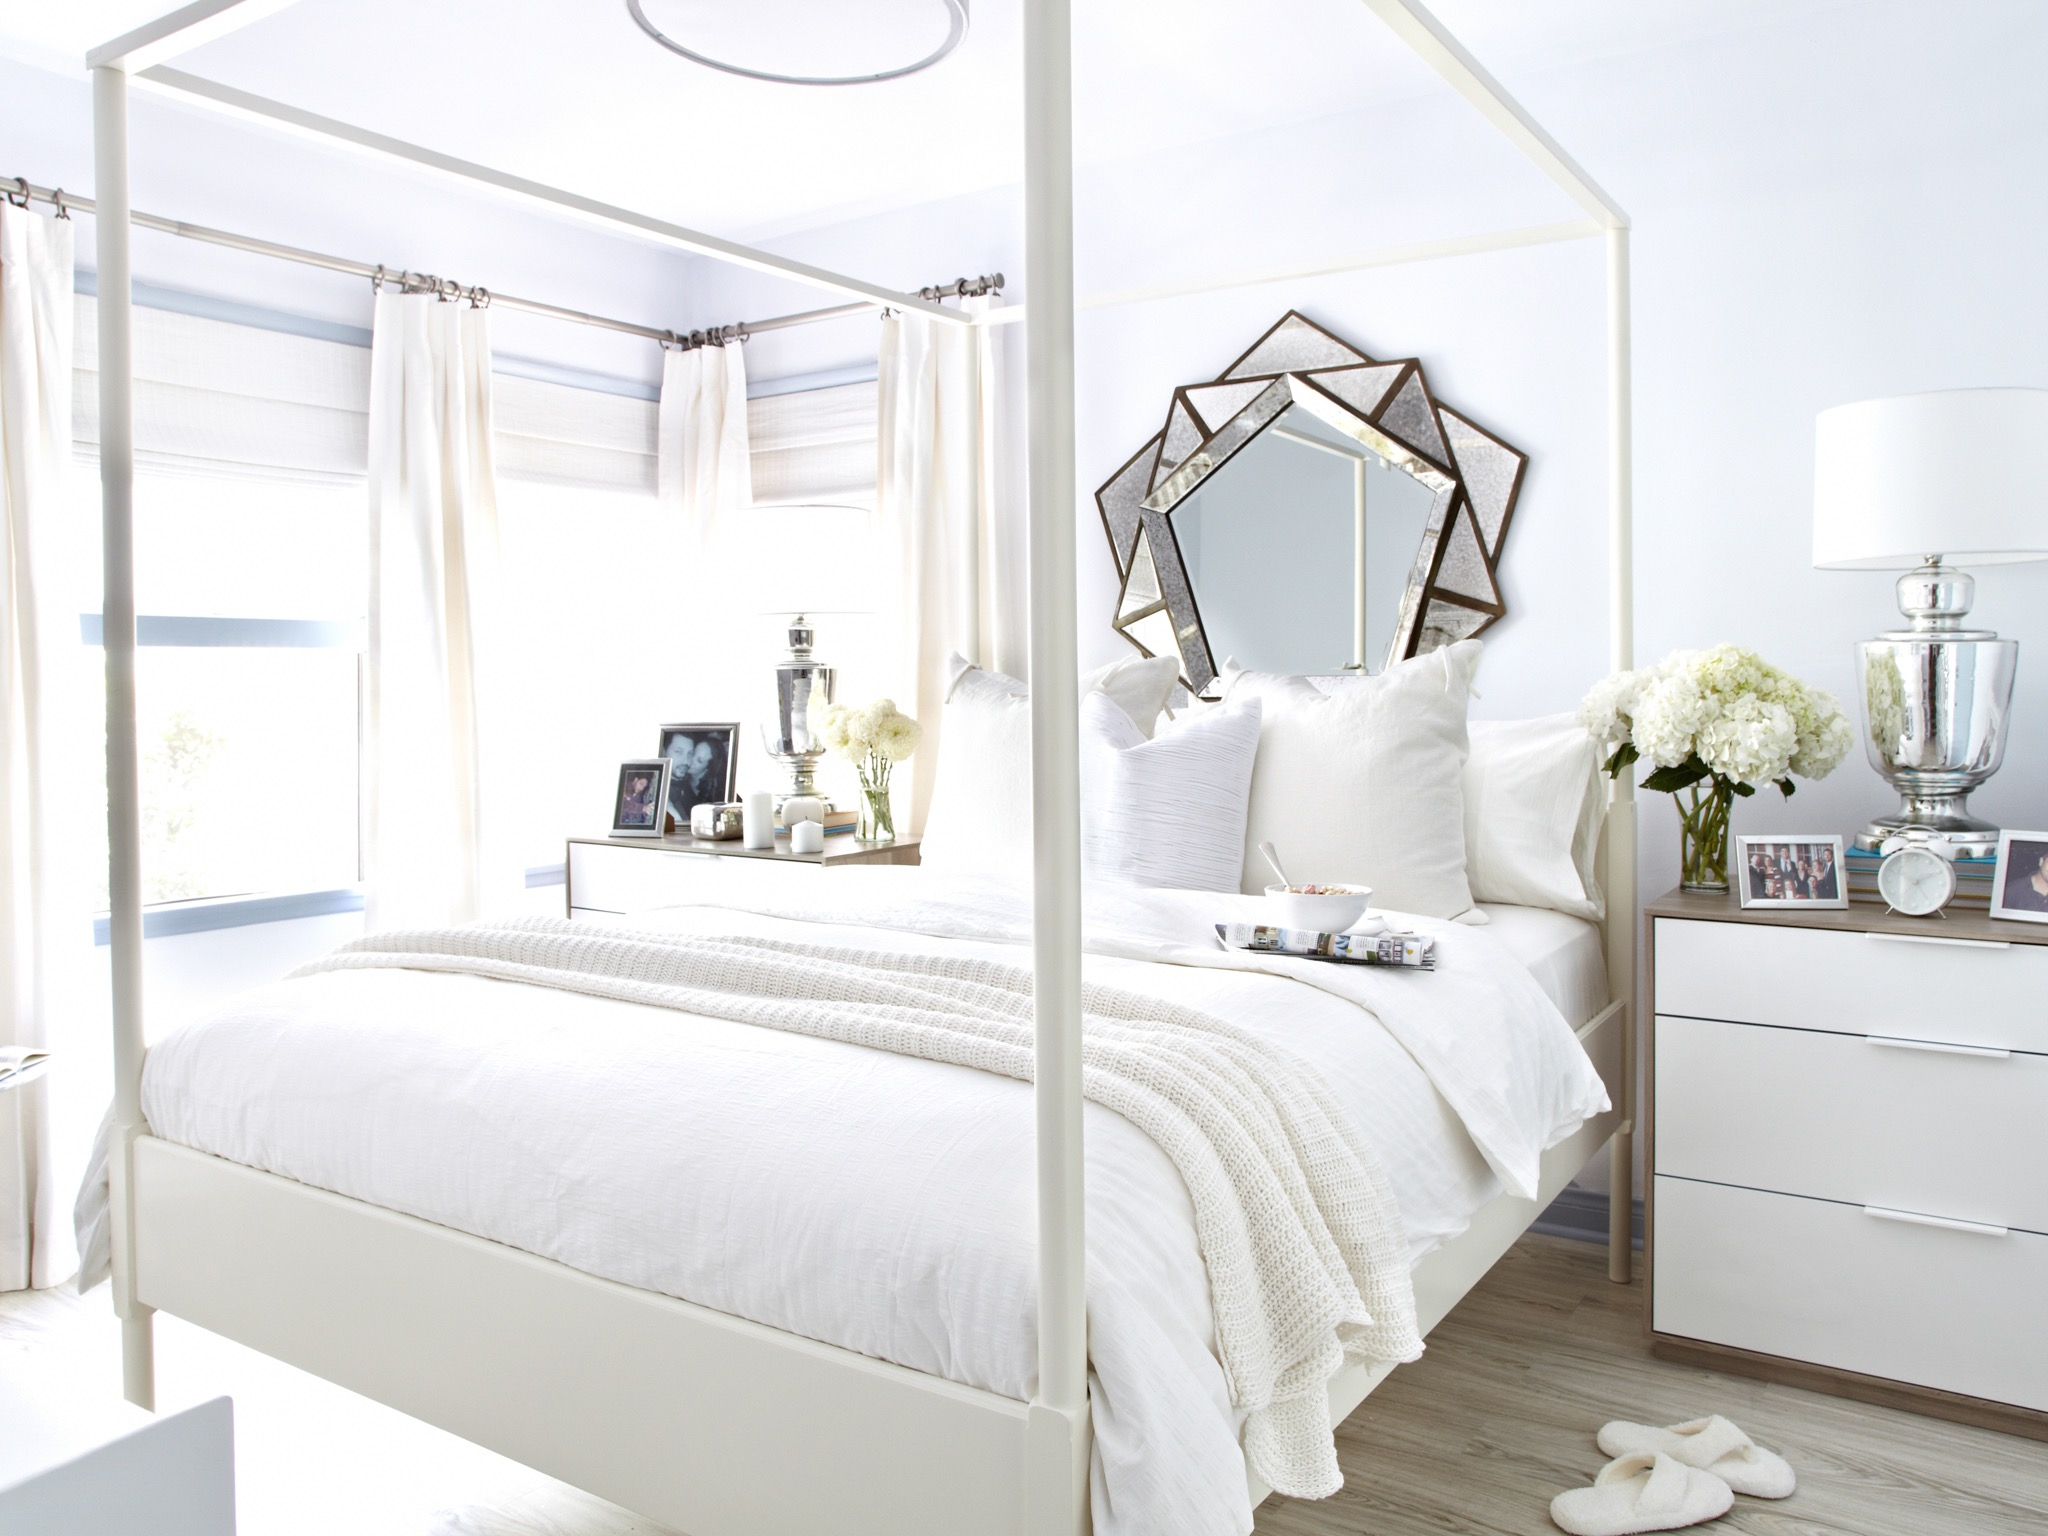 Mirror Placement In Bedroom 20 Bedroom Mirror Decor And Placement Ideas 18896 House